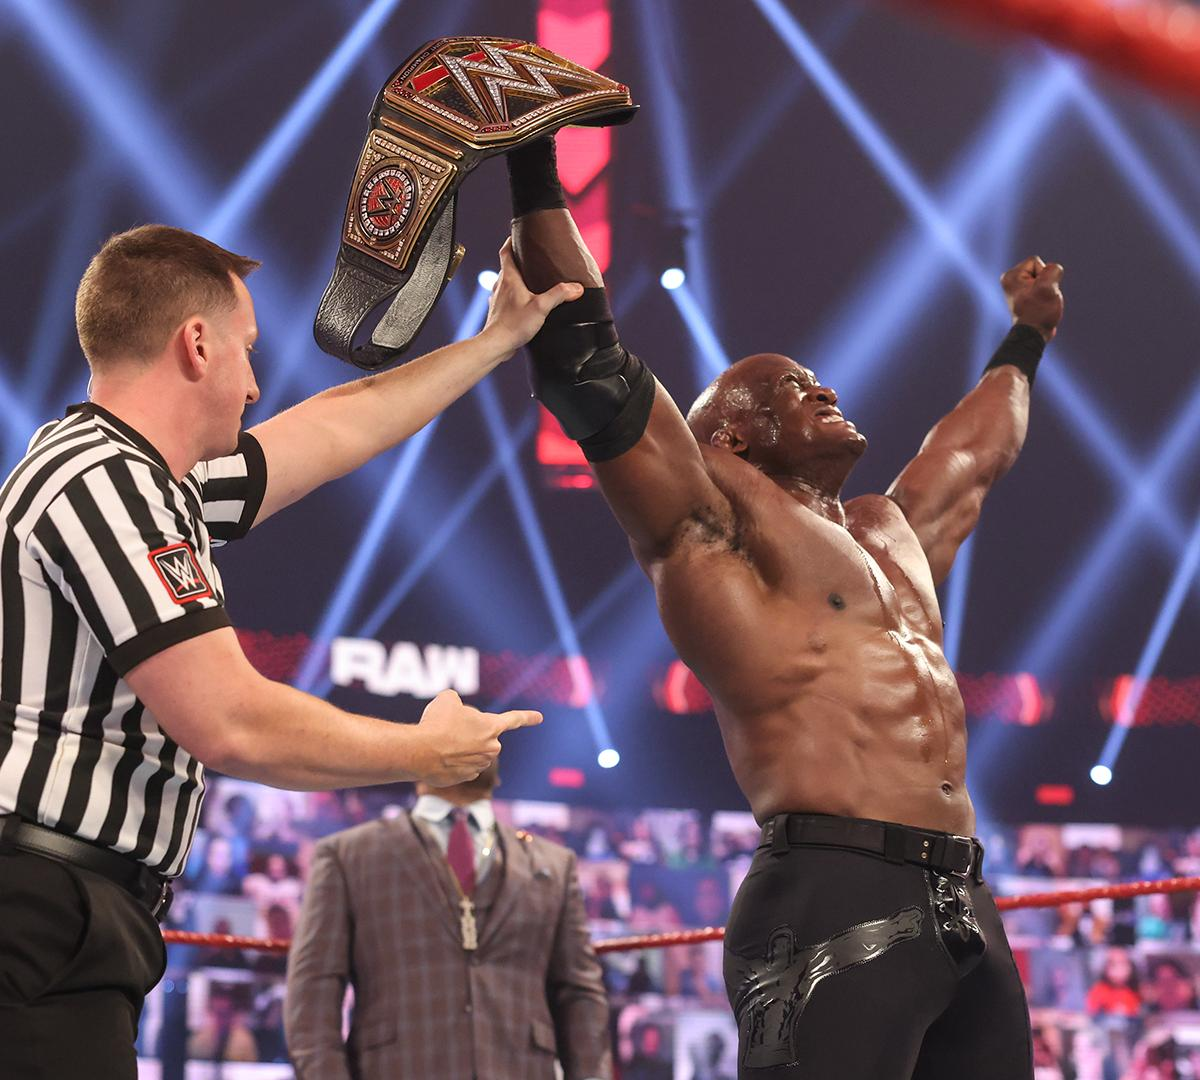 Bobby Lashley Wins Championship in Dominant Victory, More WWE Raw Fallout